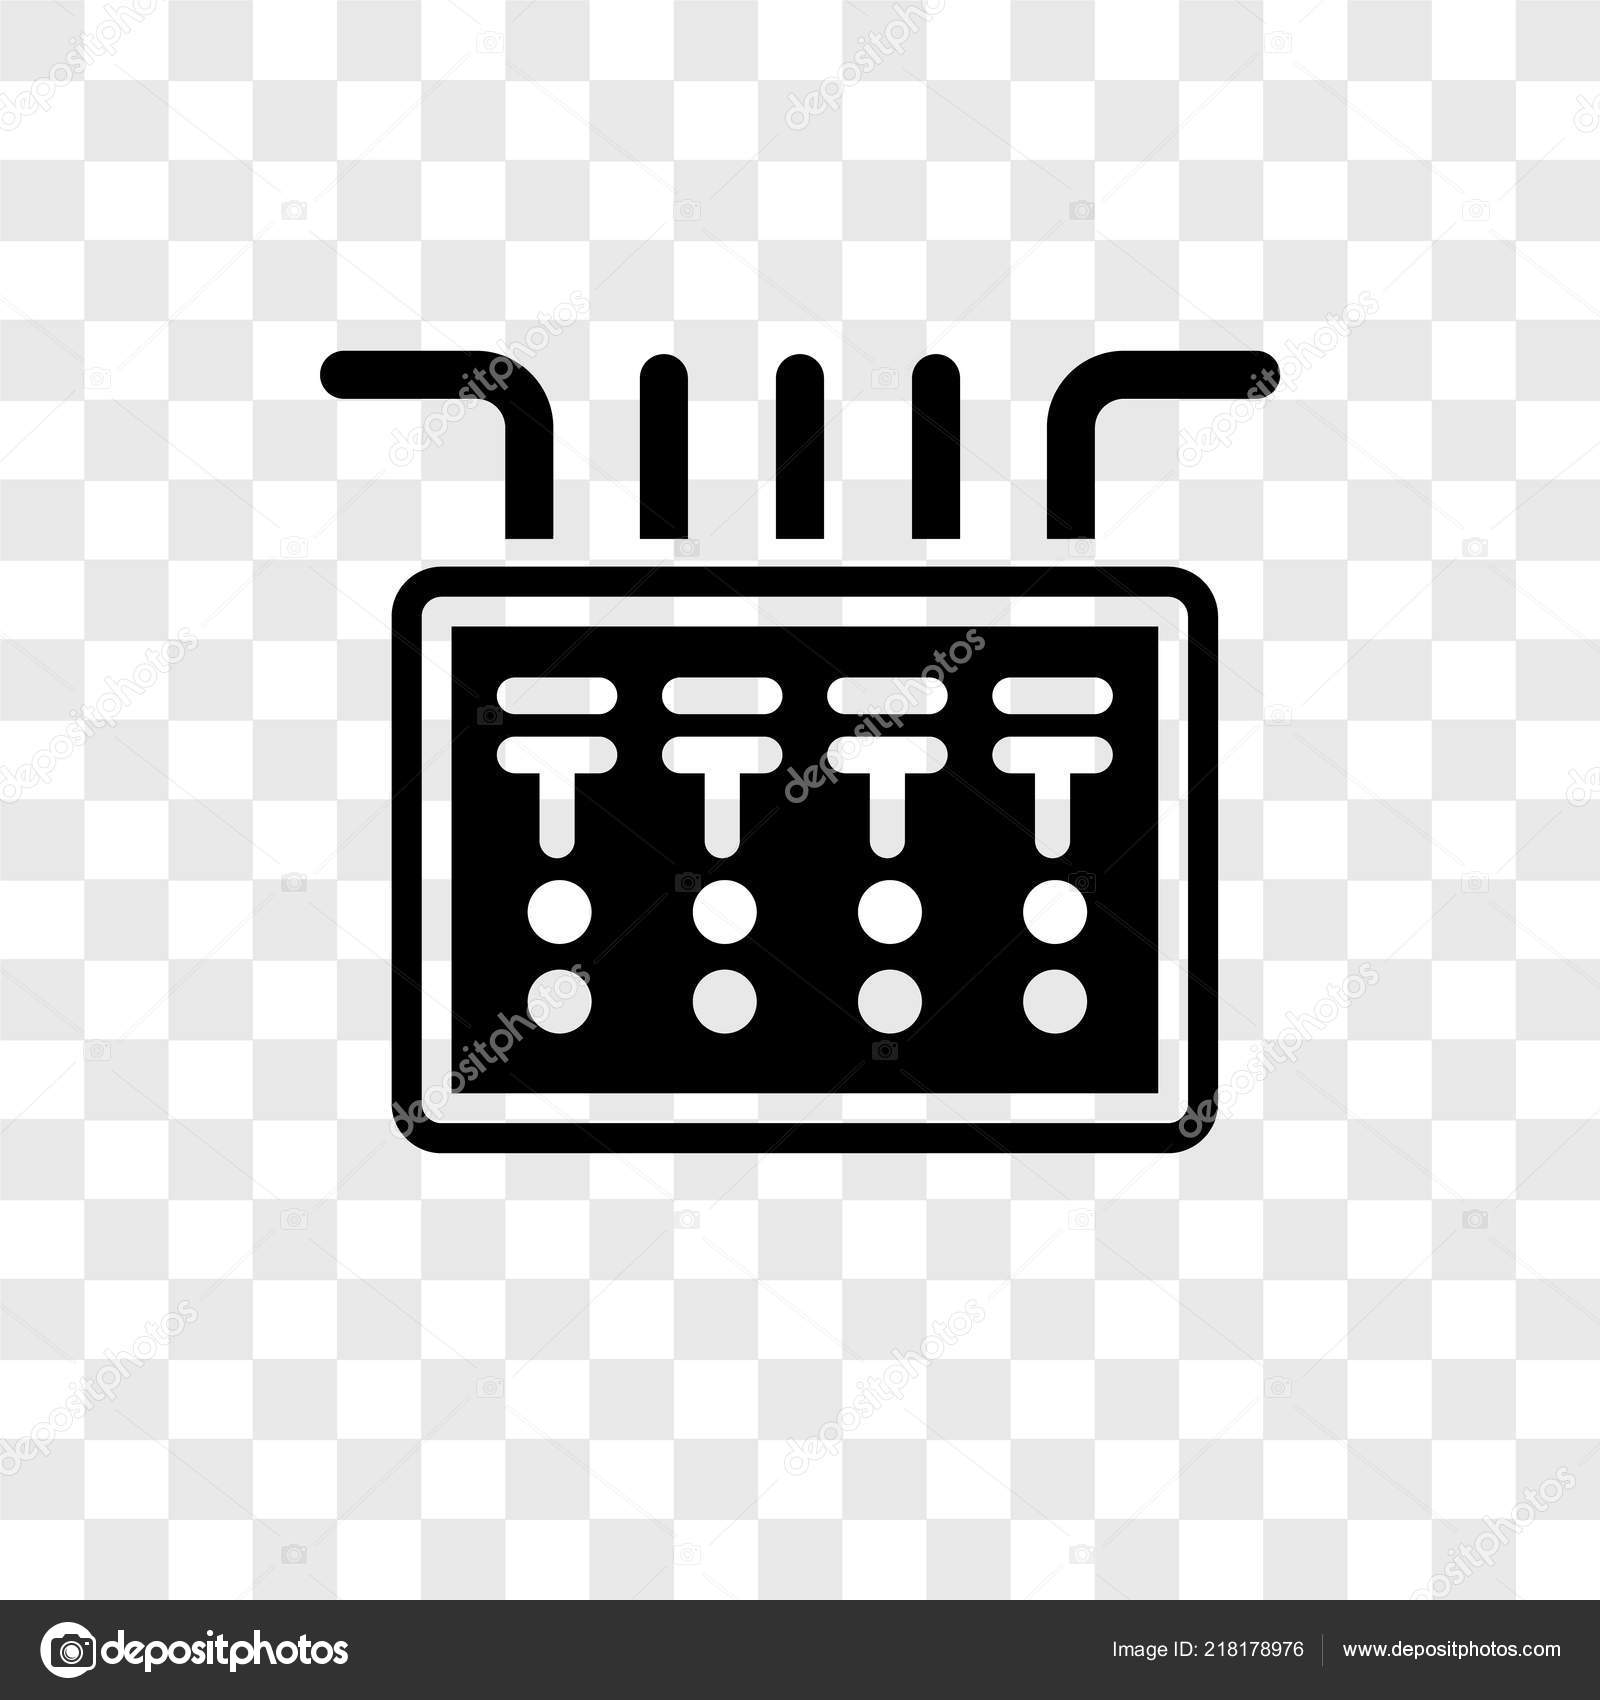 fuse box icon in trendy design style  fuse box icon isolated on transparent  background  fuse box vector icon simple and modern flat symbol for web  site,